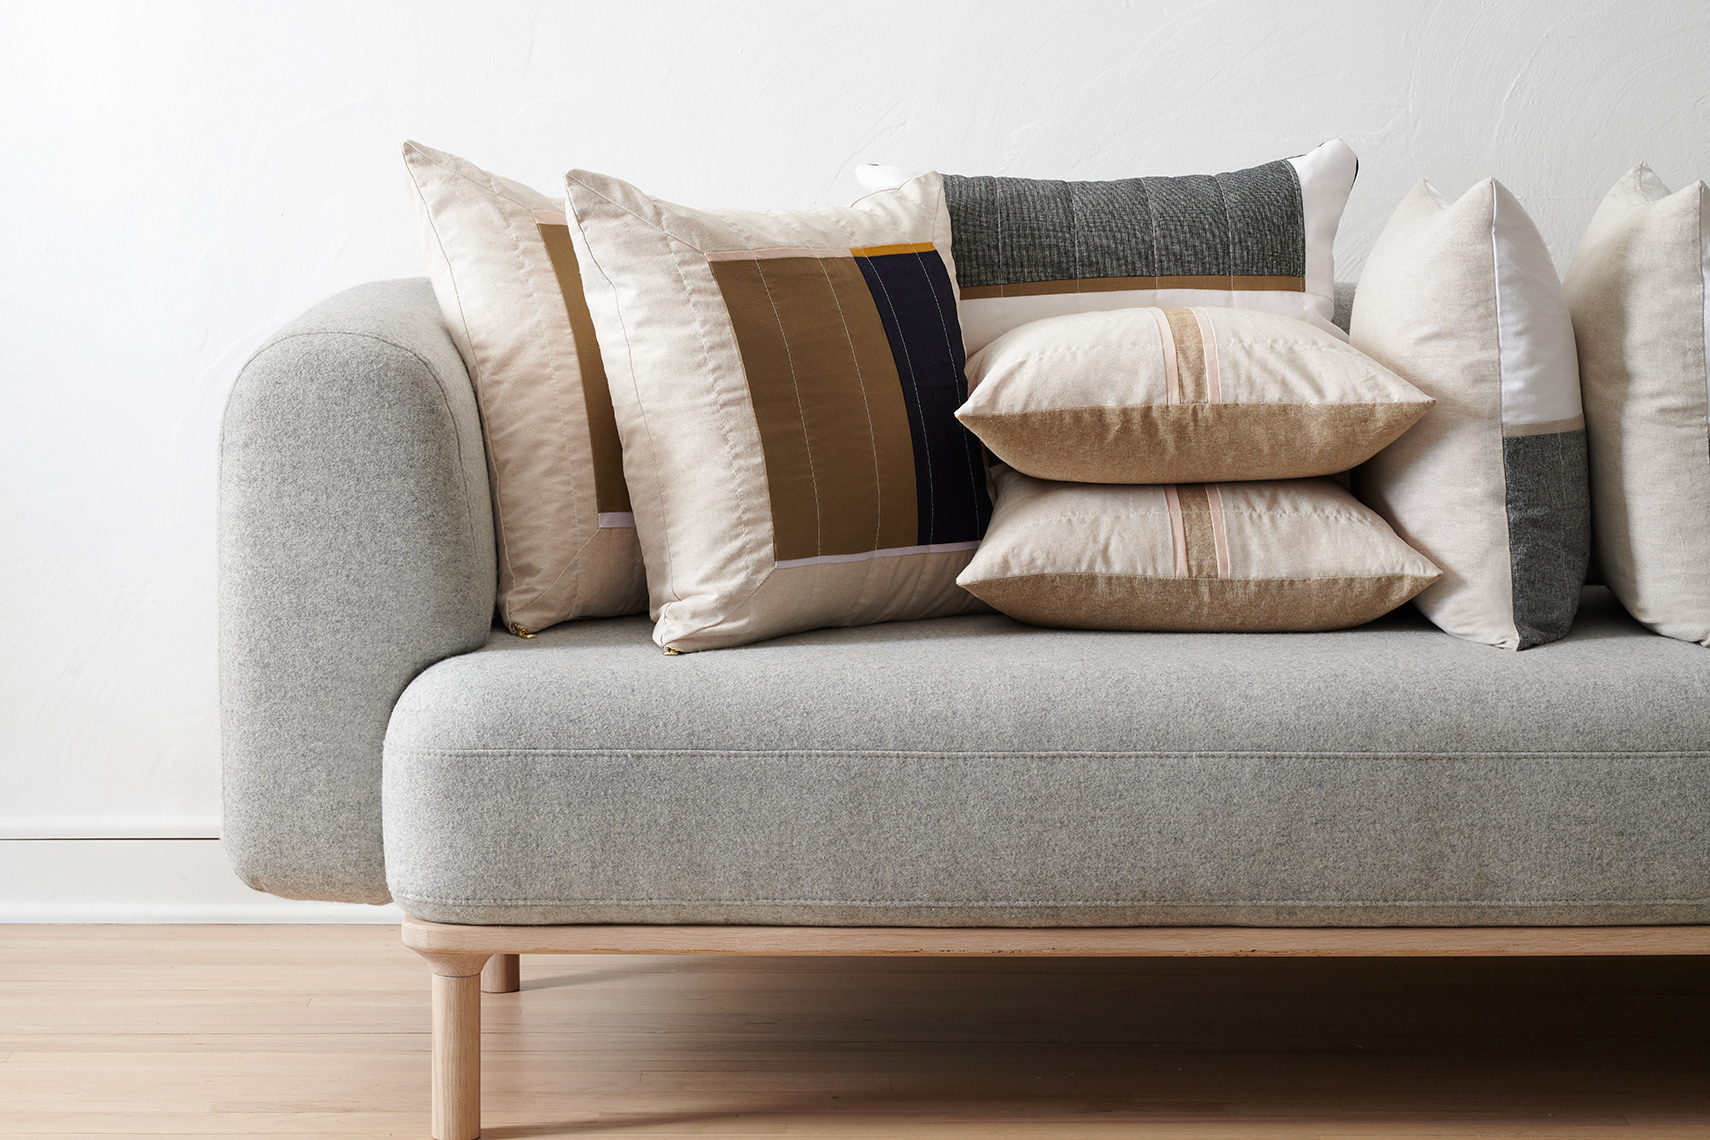 LouisGray_ThrowPillows_Couch